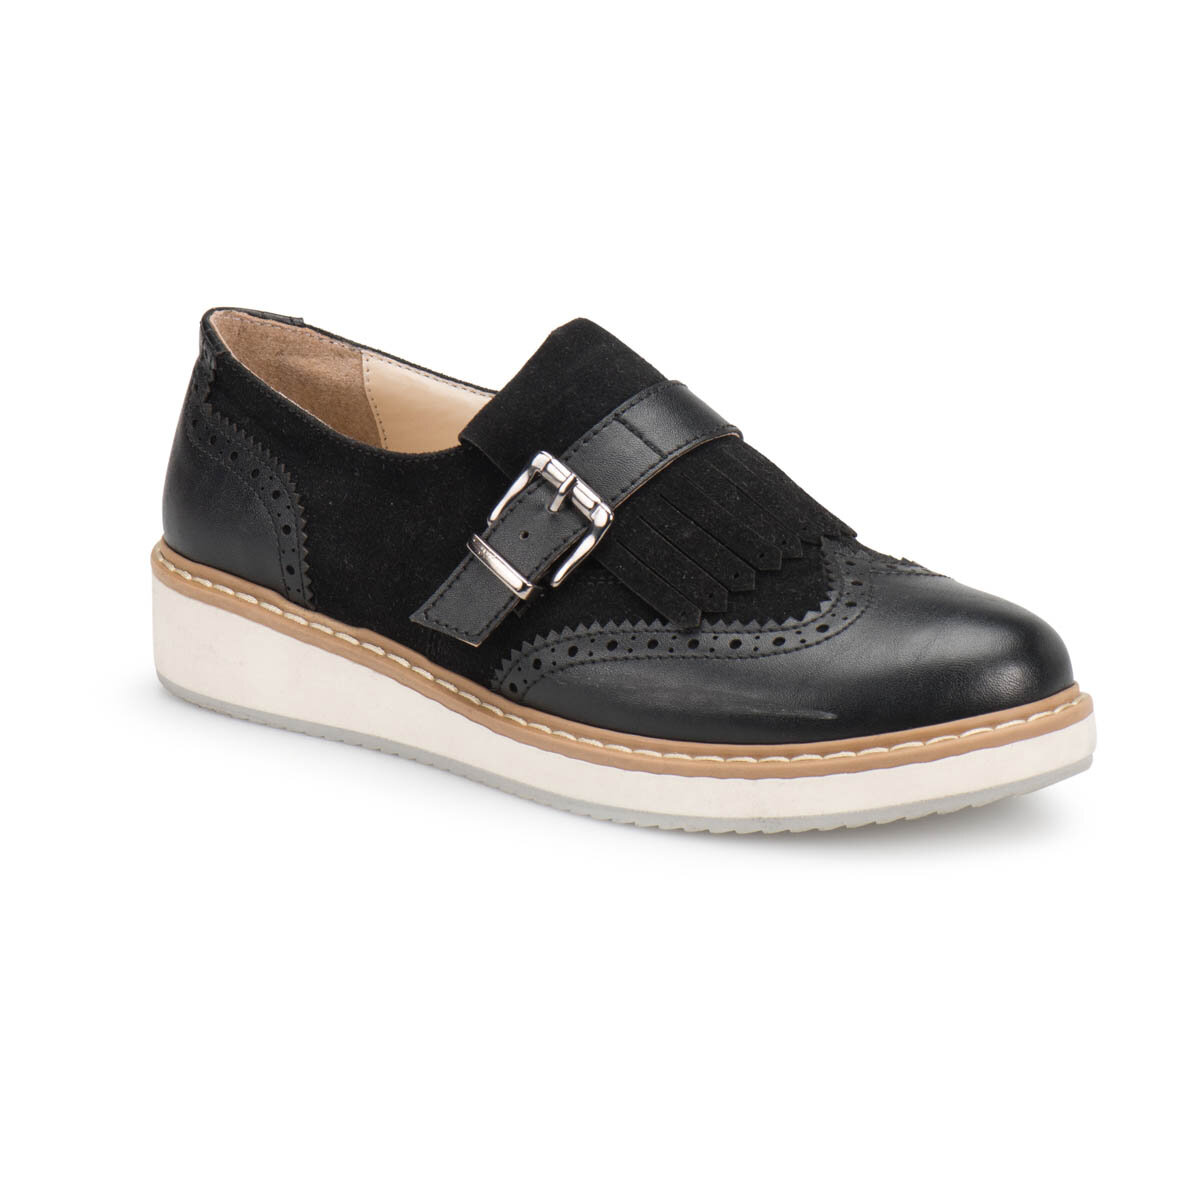 FLO Z209 Black Women Maskulen Shoes BUTIGO